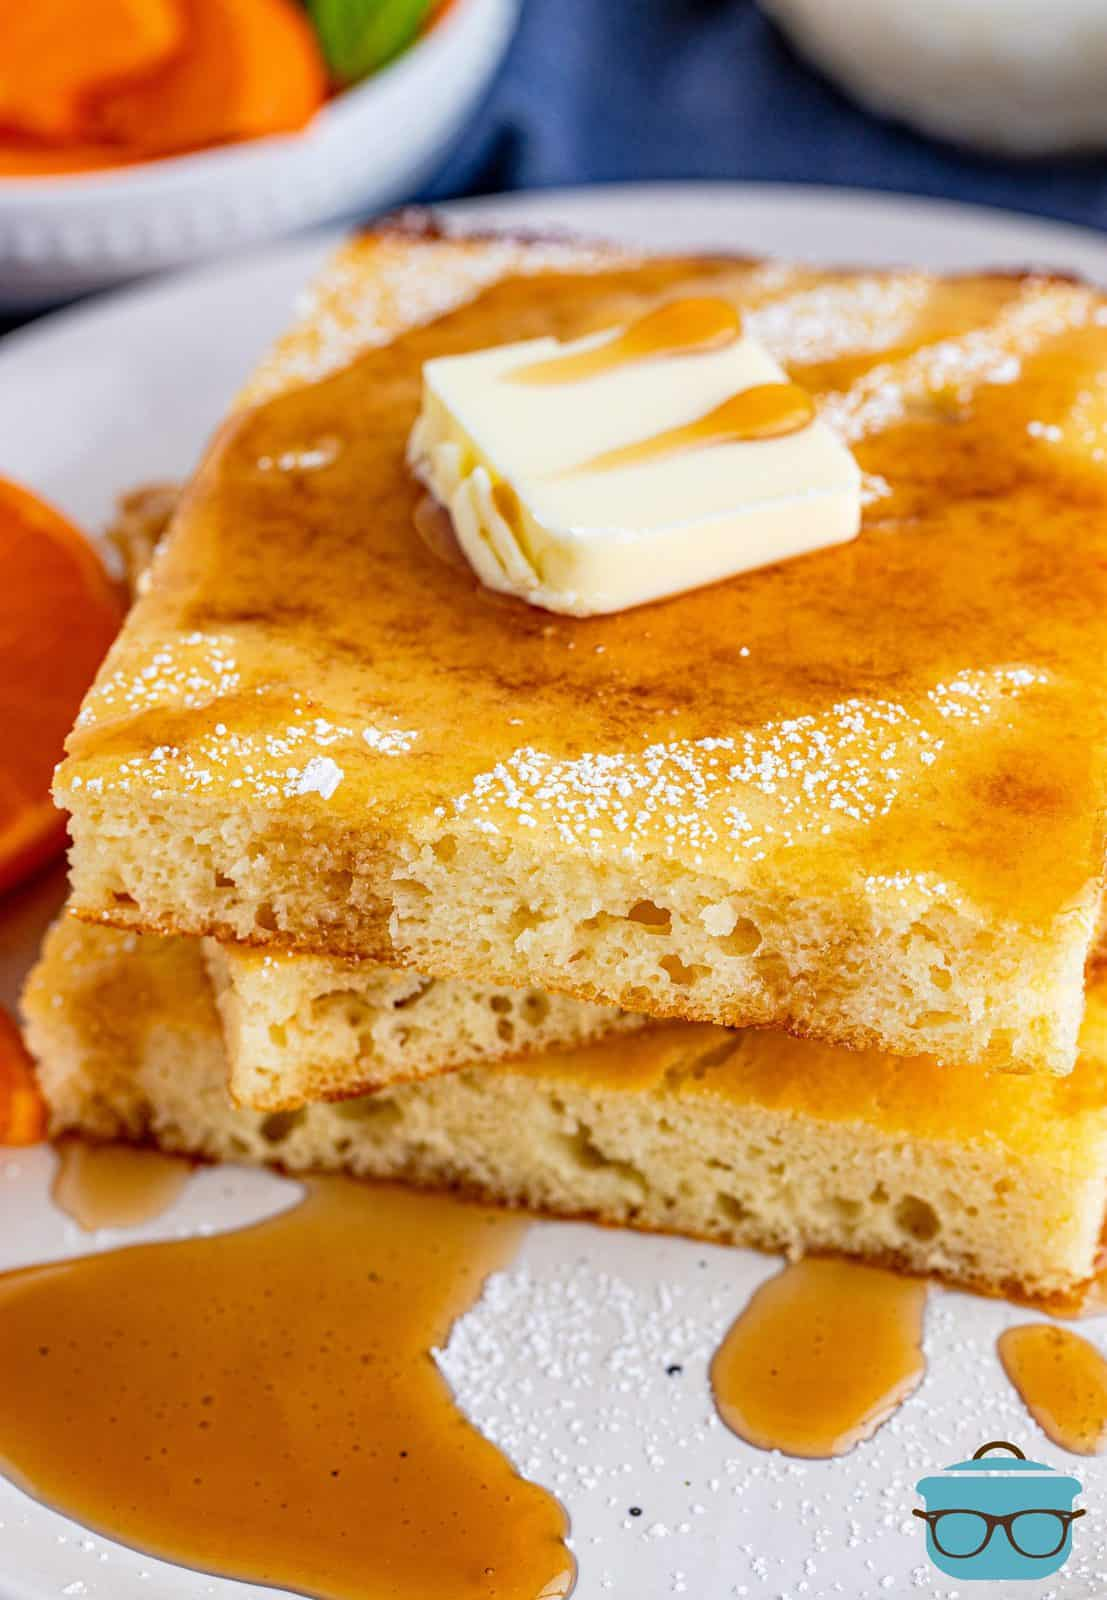 Three stacked slices of Sheet Pan Pancakes with butter and syrup.